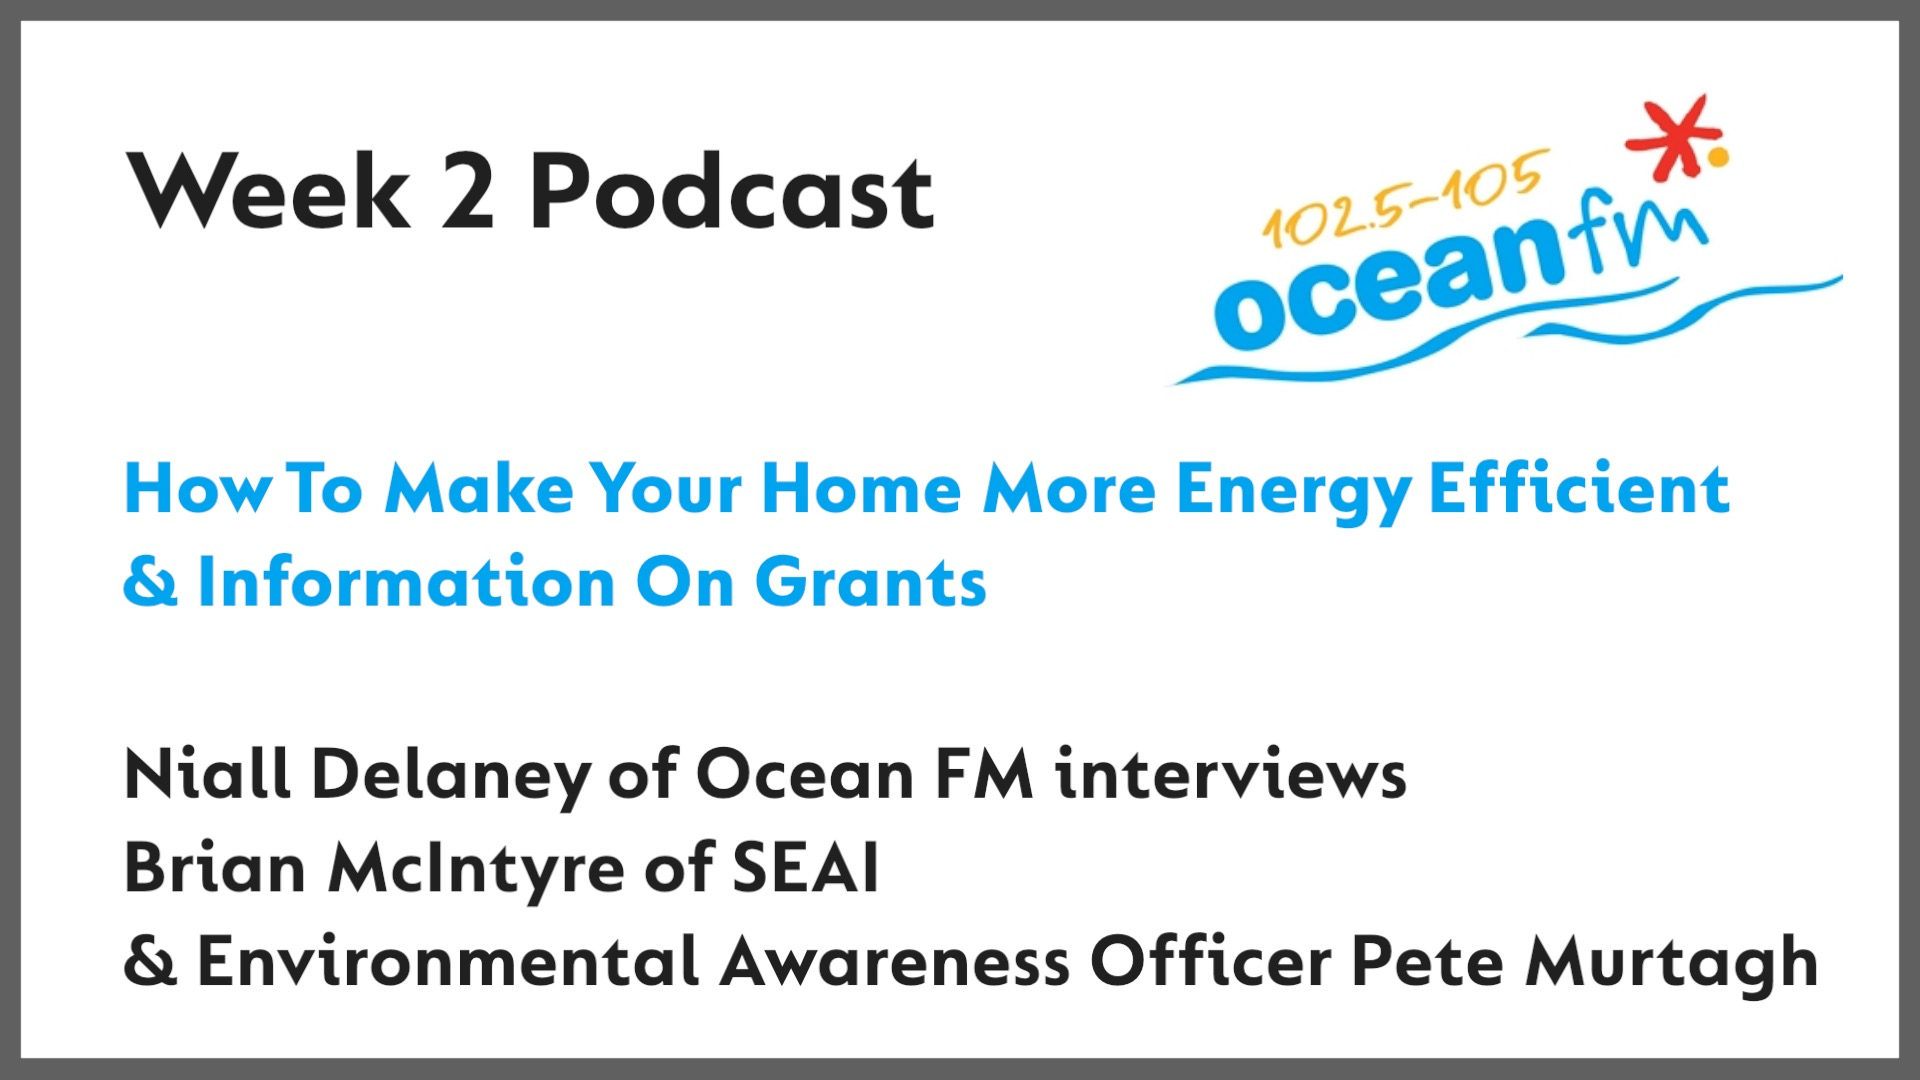 This week's Green Aware Sligo interview on Ocean FM